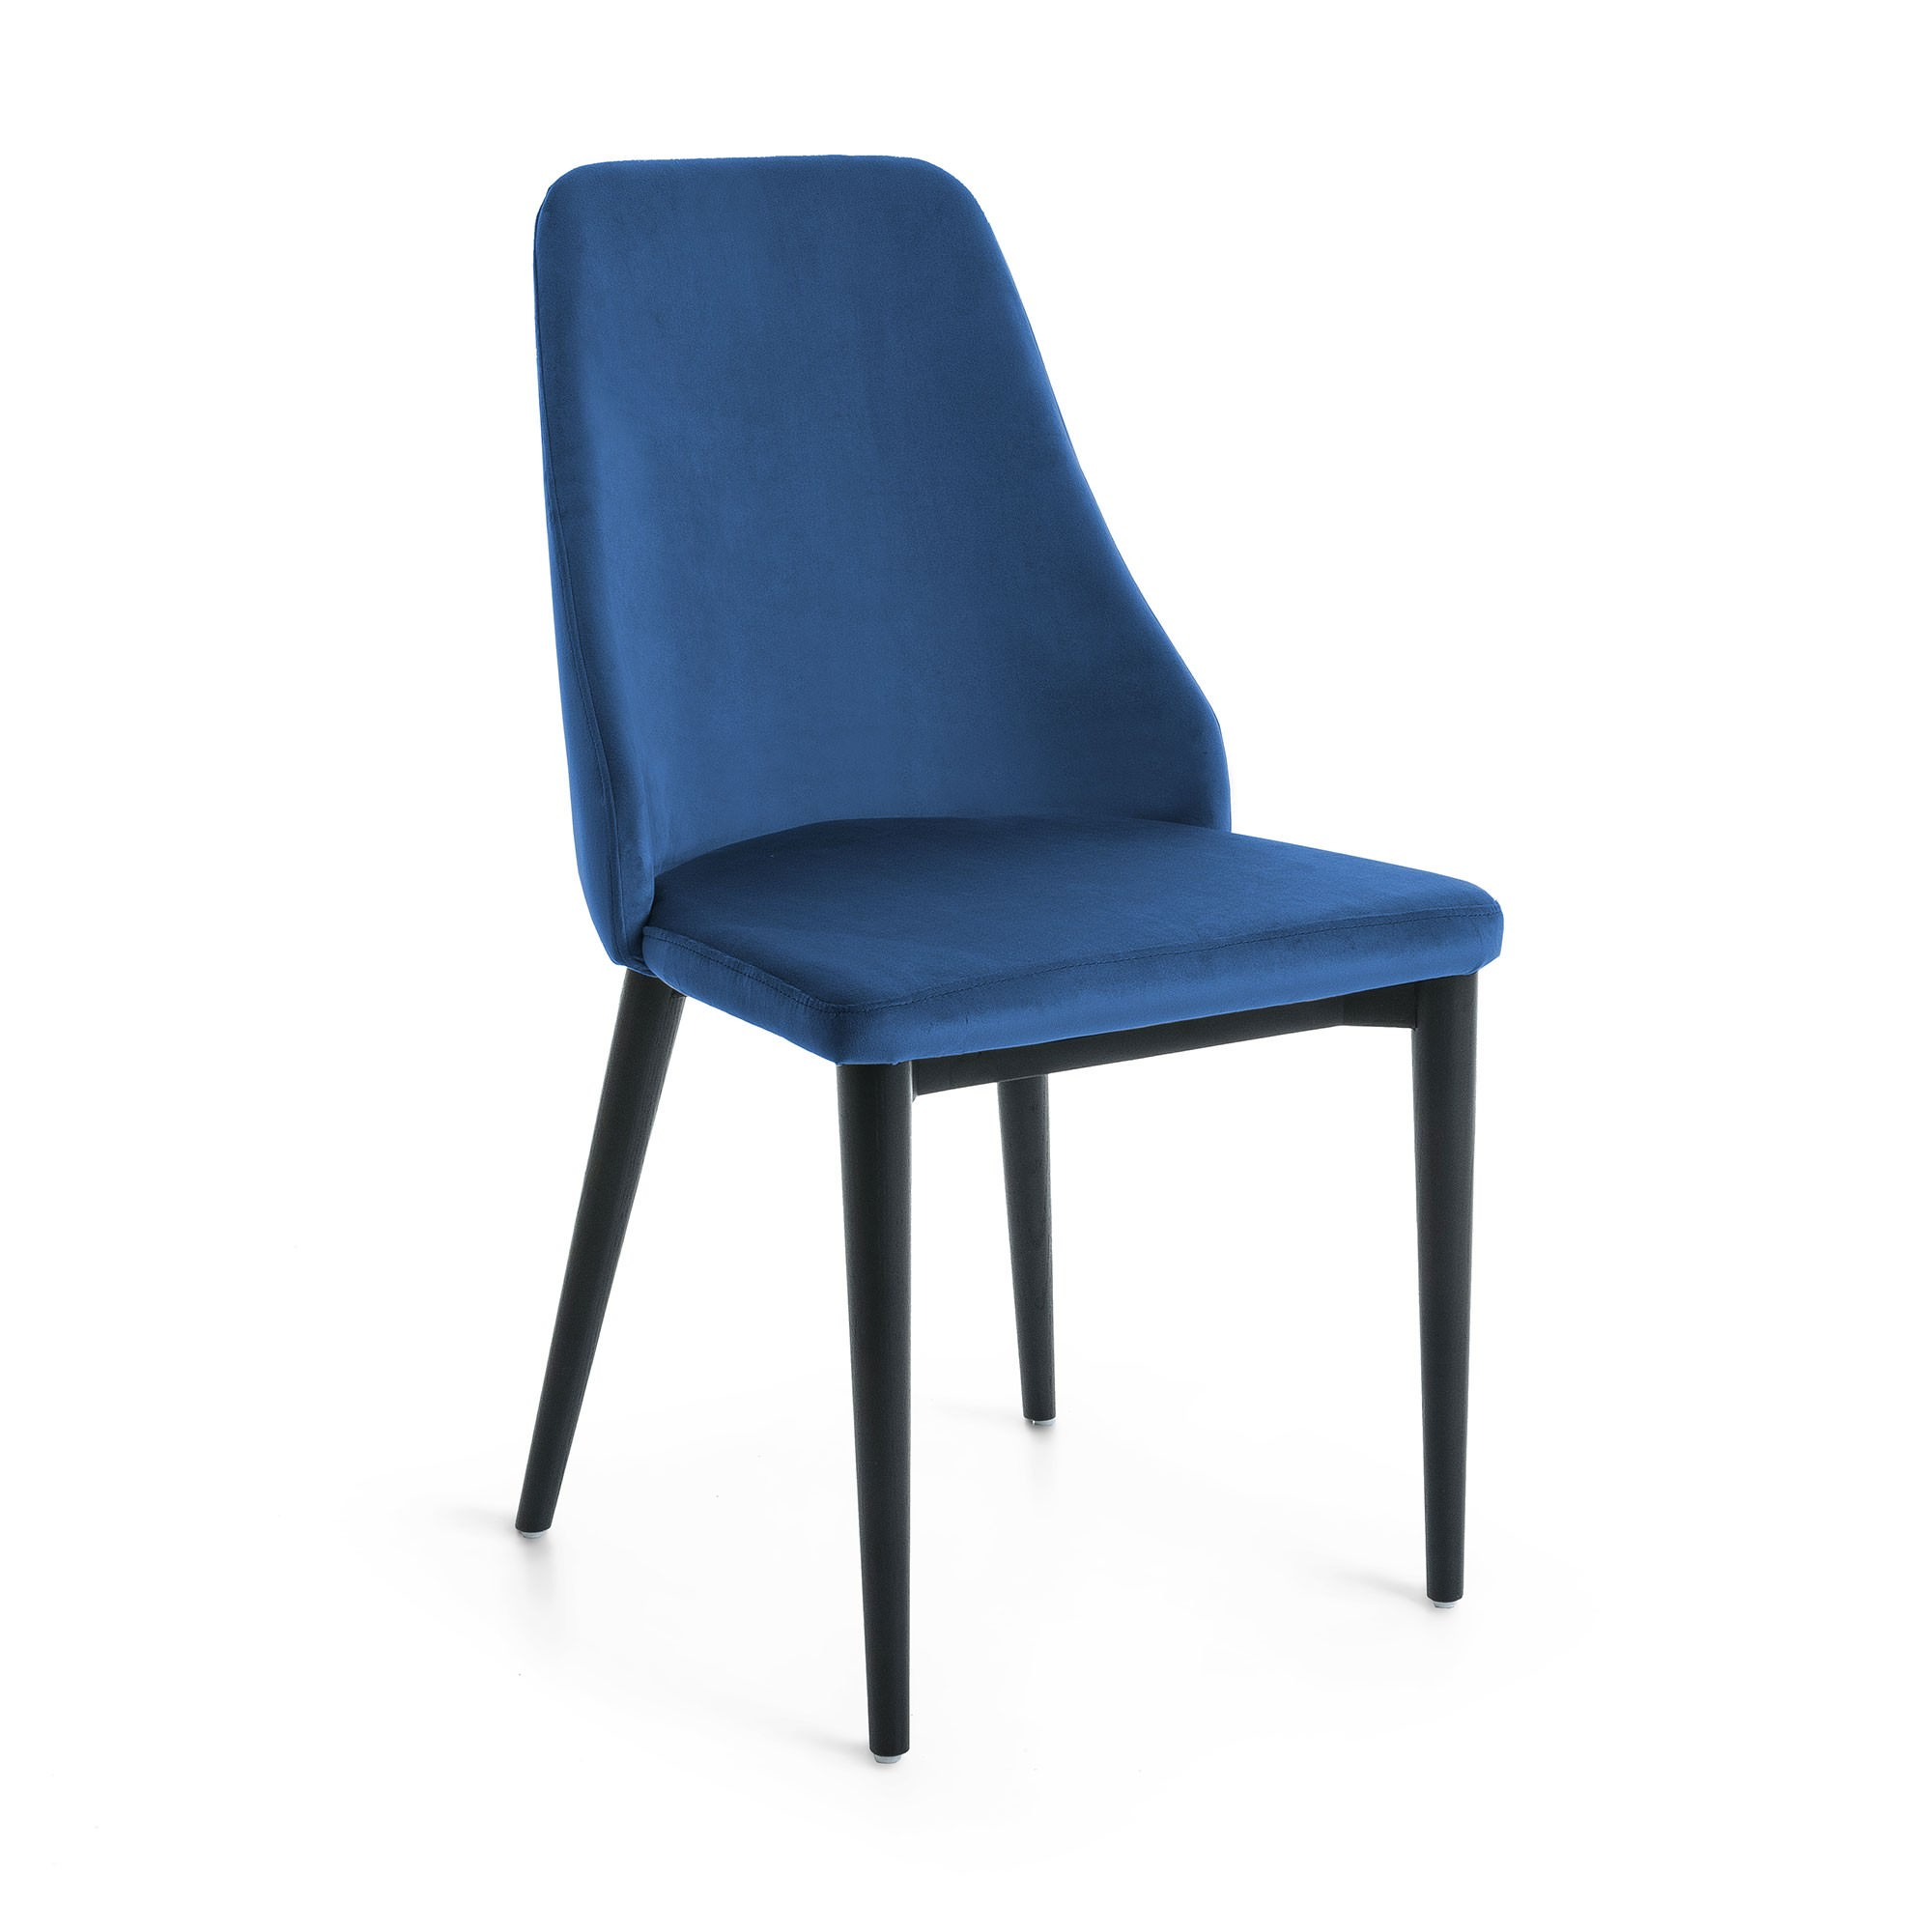 Roxy Velvet Fabric Dining Chair, Blue / Black